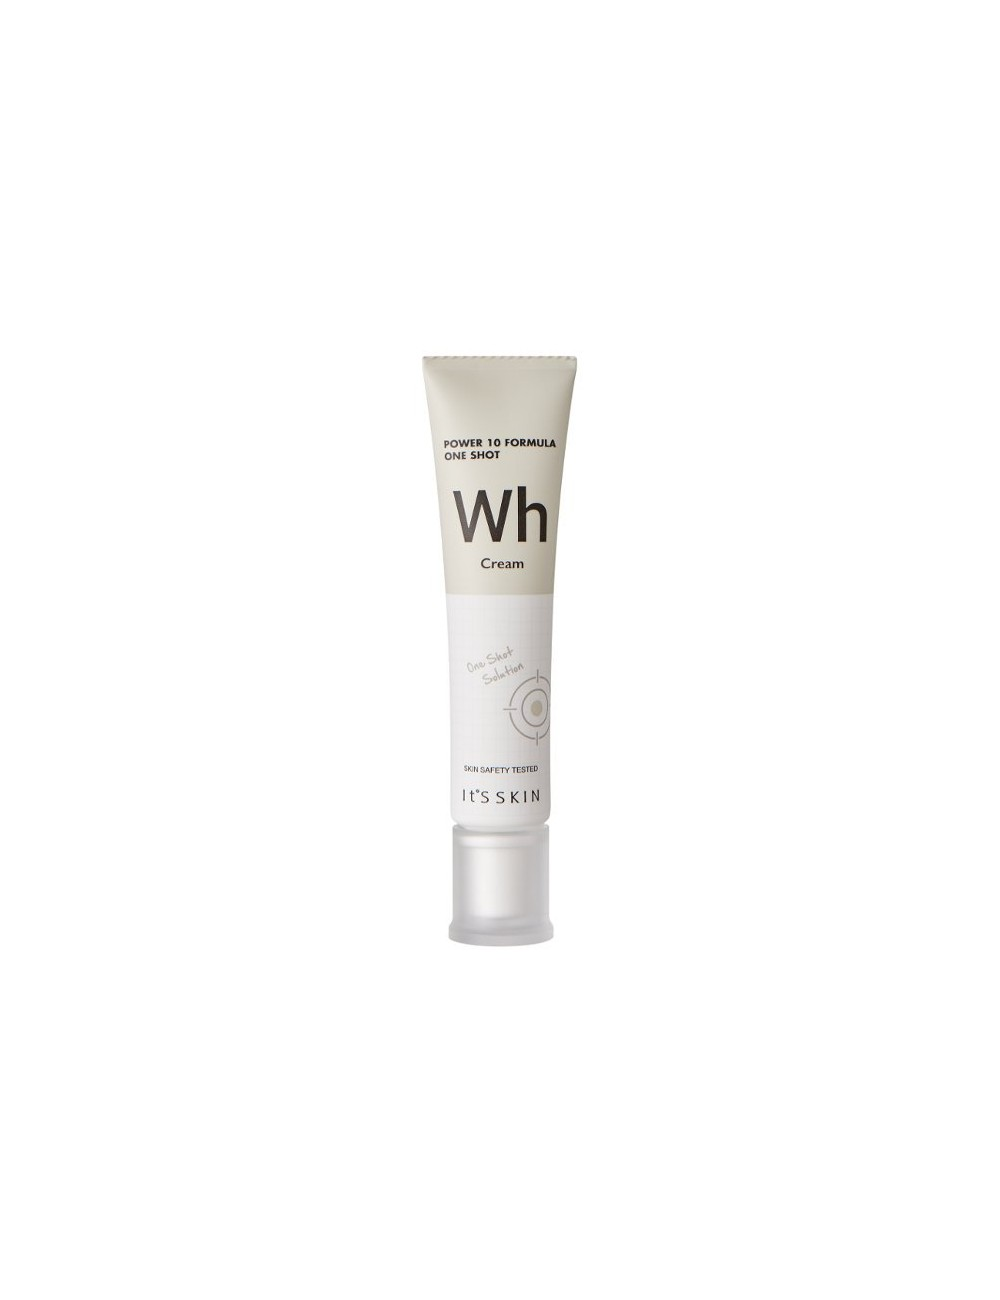 Crema Antimanchas con Niacinamida It's Skin Power 10 Formula One Shot WH Cream